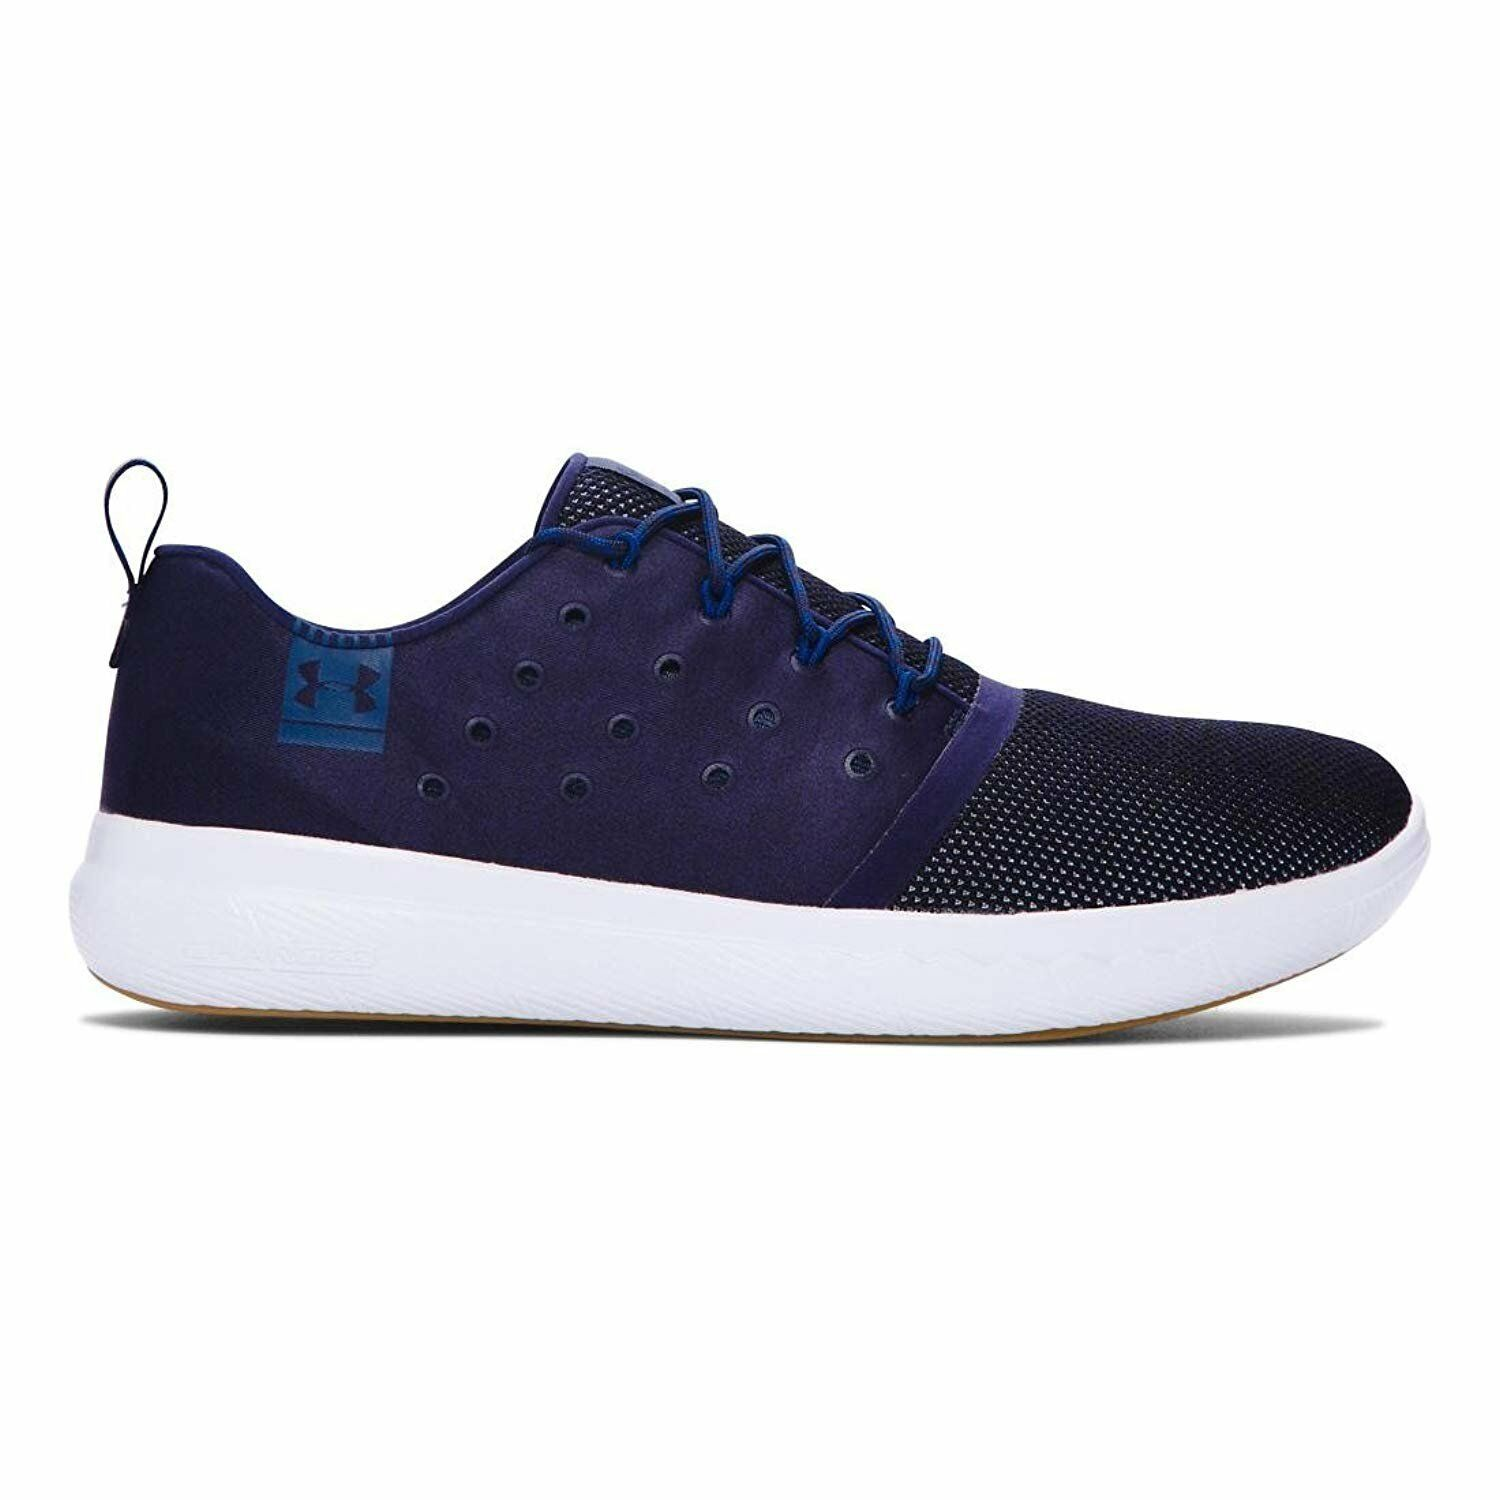 Under Armour Uomo UA Charged 24 7 Low Low Low Running scarpe Midnight Navy Dimensione 10 e4db20